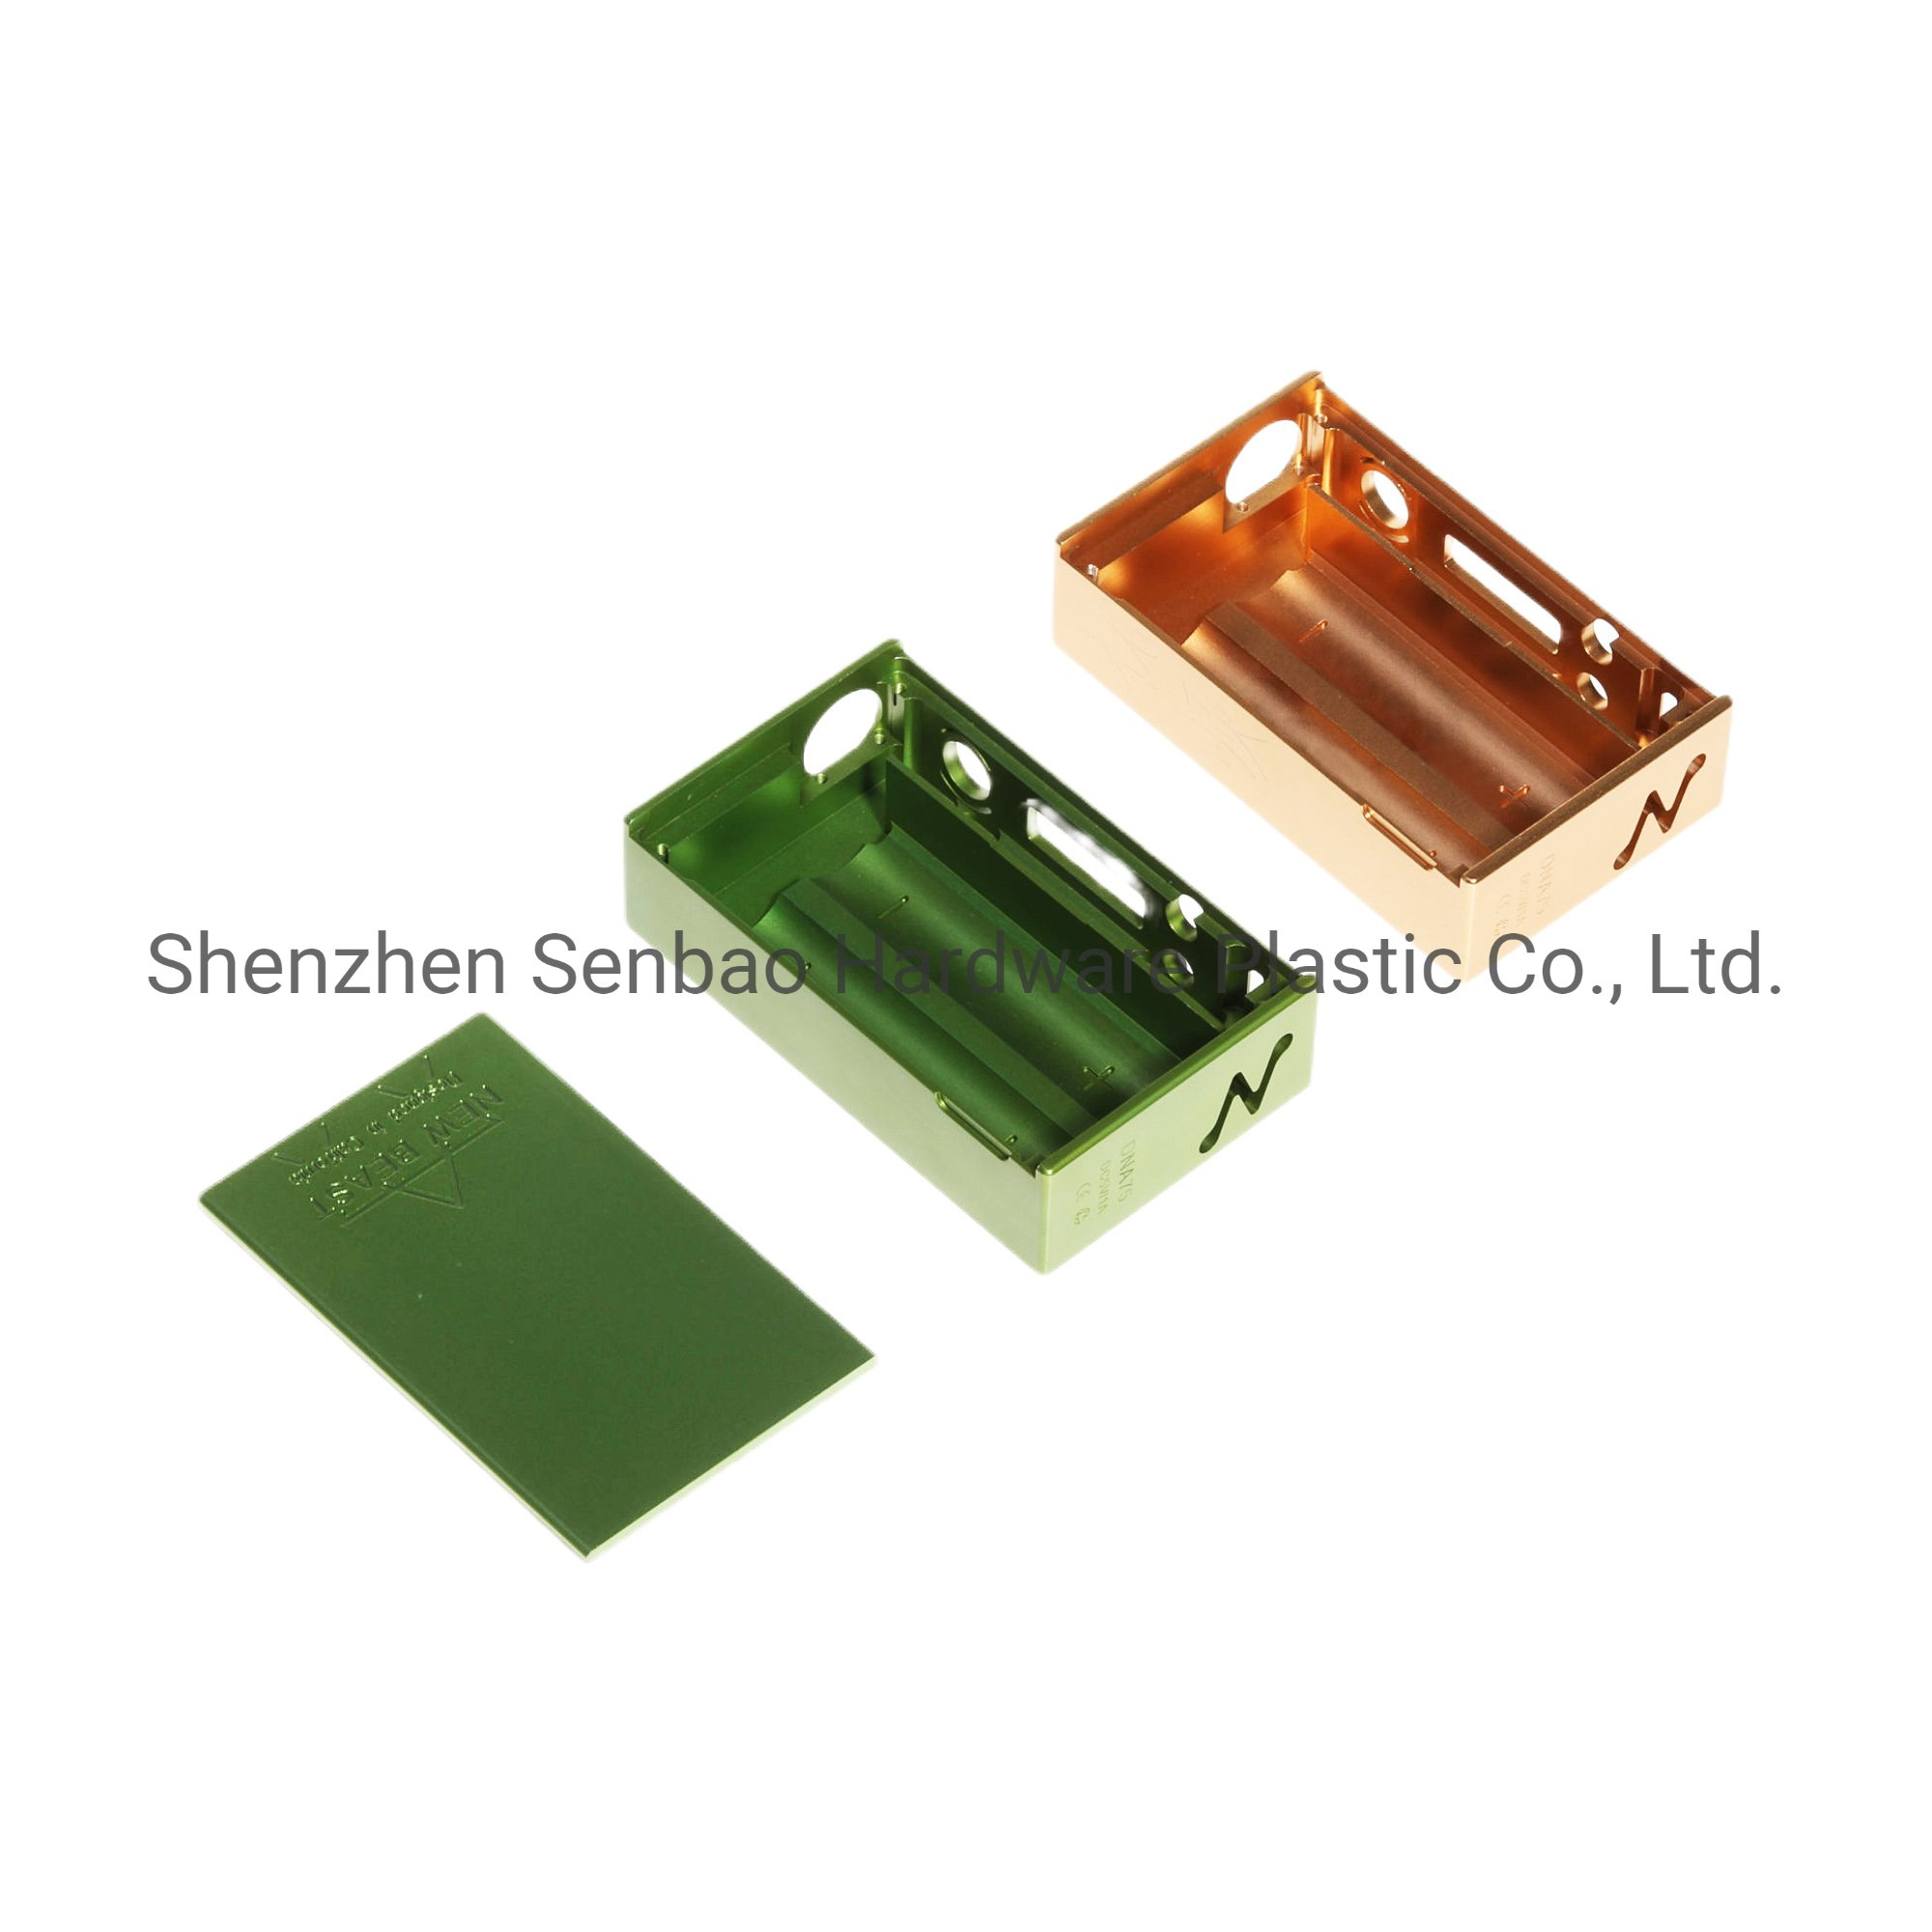 Shenzhen Senbao Hardware Plastic Co., Ltd.